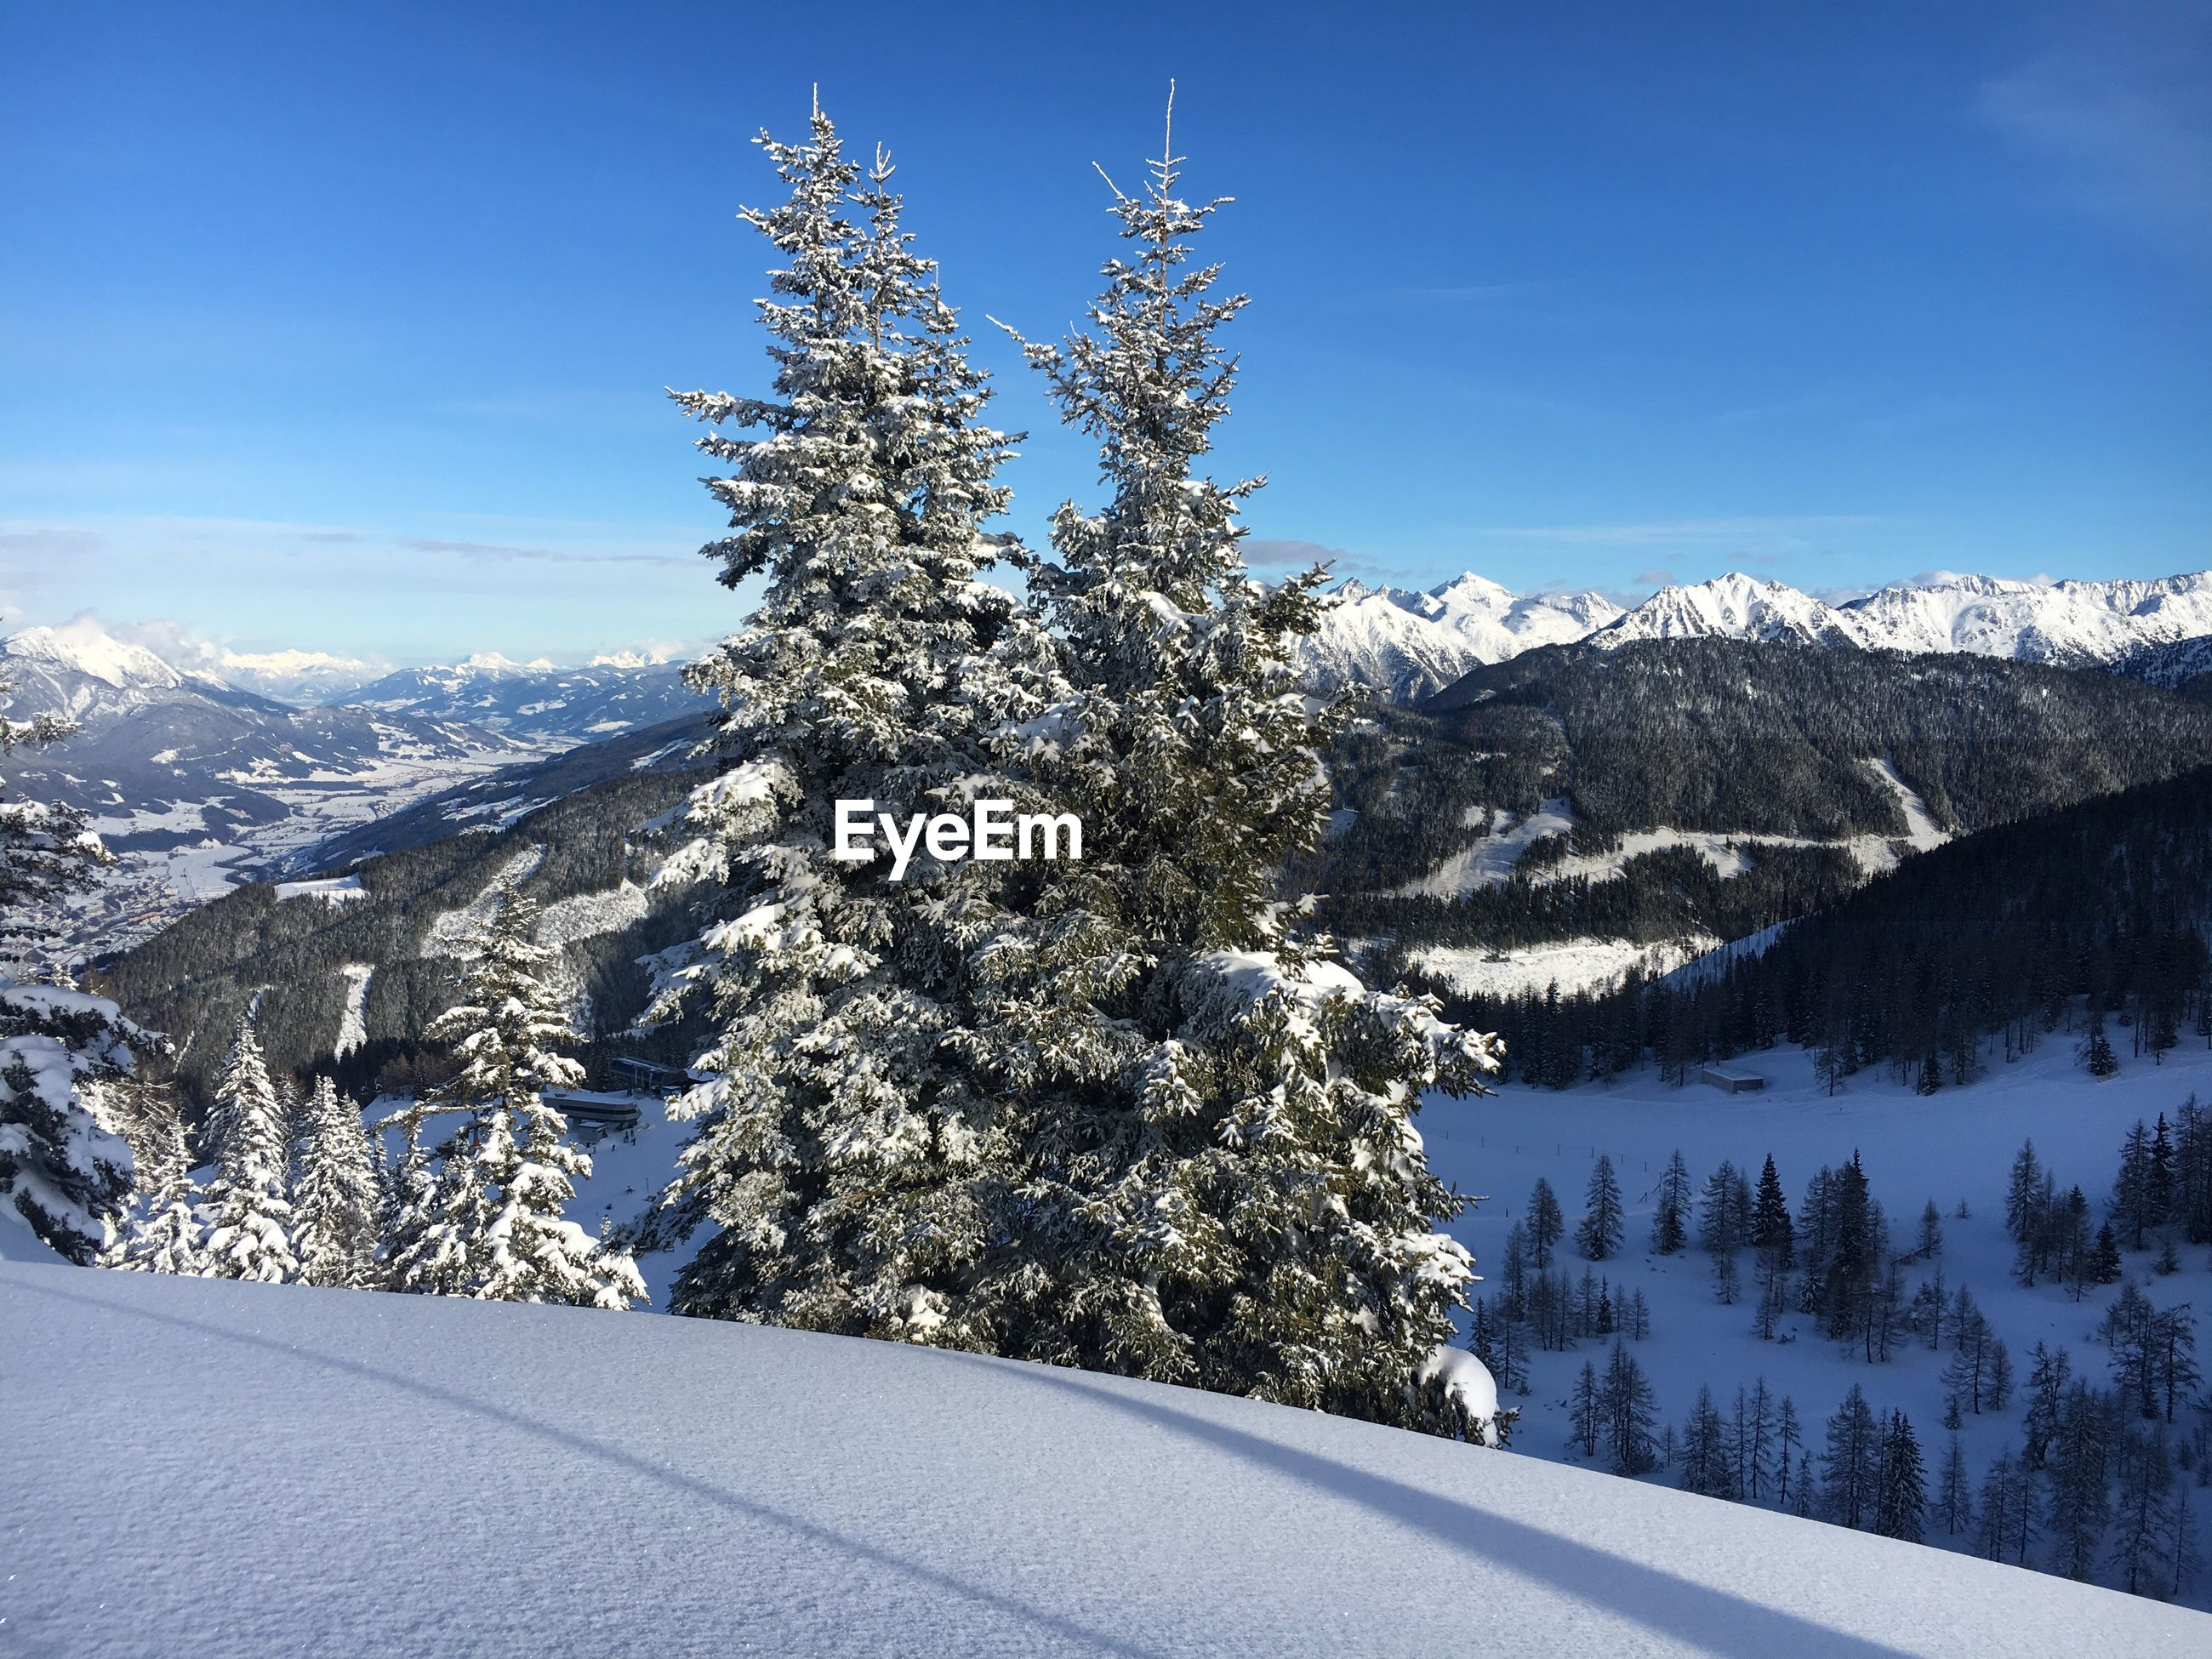 SNOW COVERED PINE TREES AGAINST MOUNTAINS